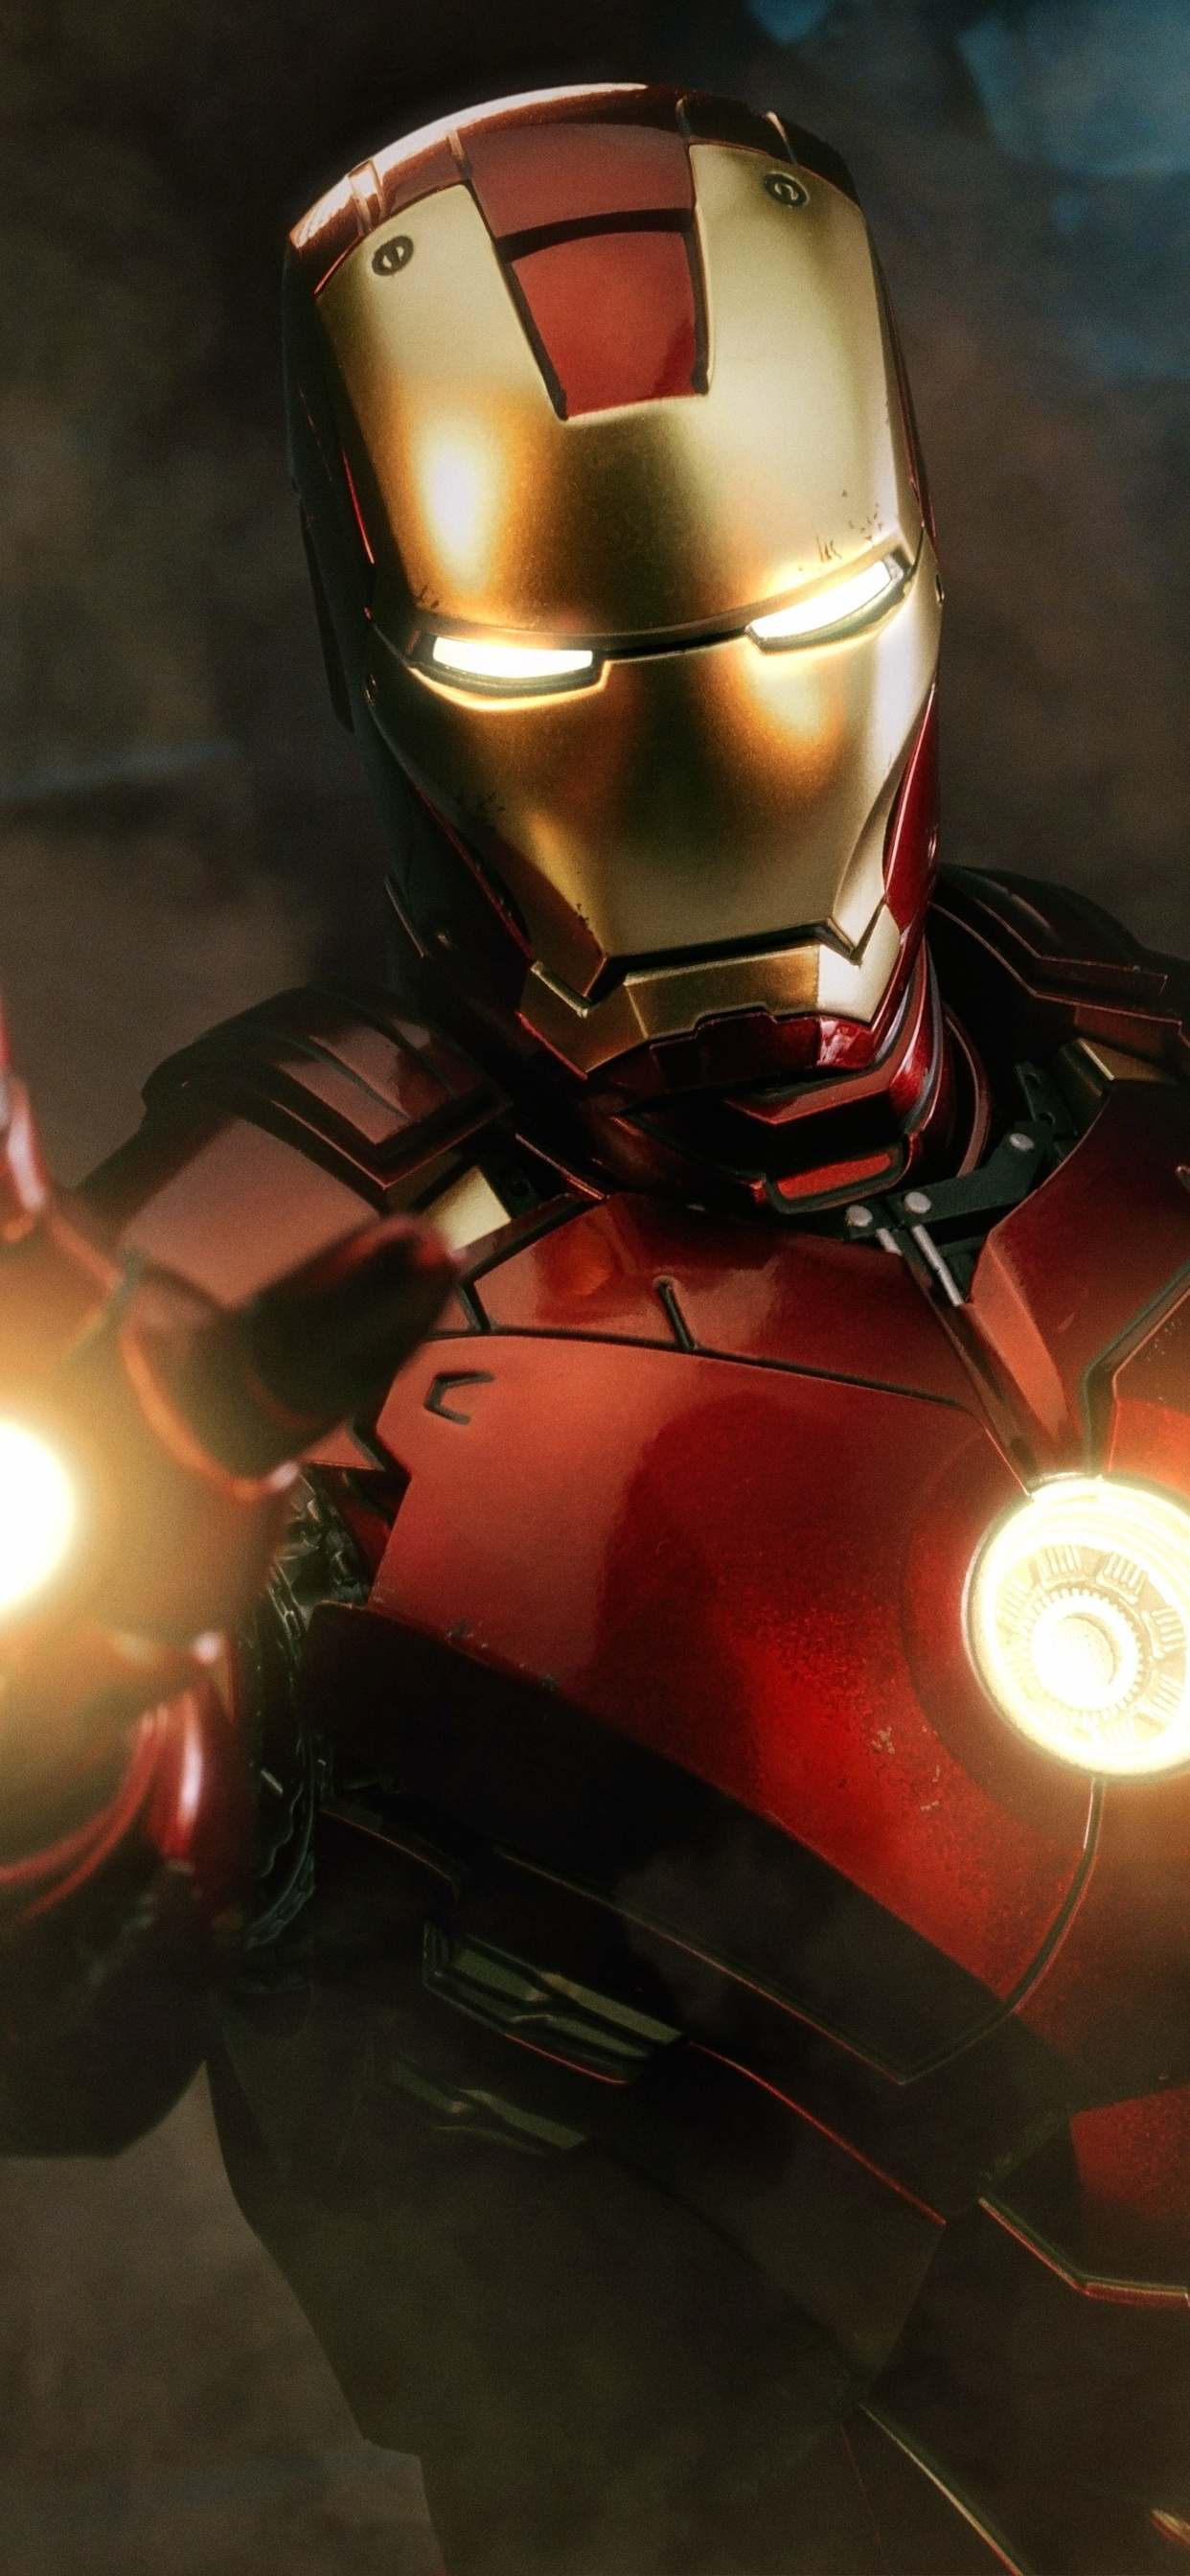 1242x2688 2018 Iron Man 4k Iphone Xs Max Hd 4k Wallpapers Images